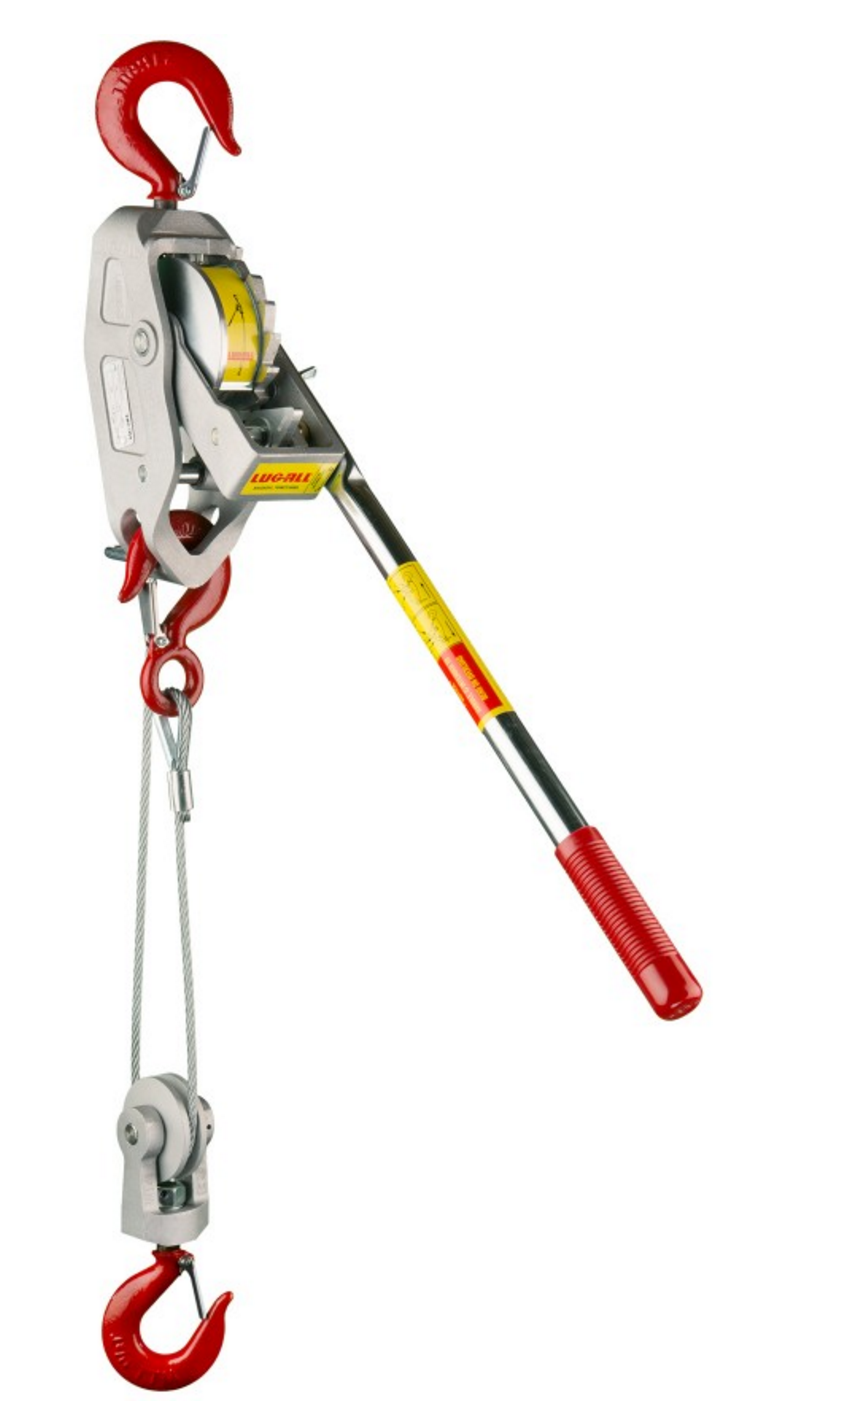 LugAll 1 1/2 TON CABLE HOIST